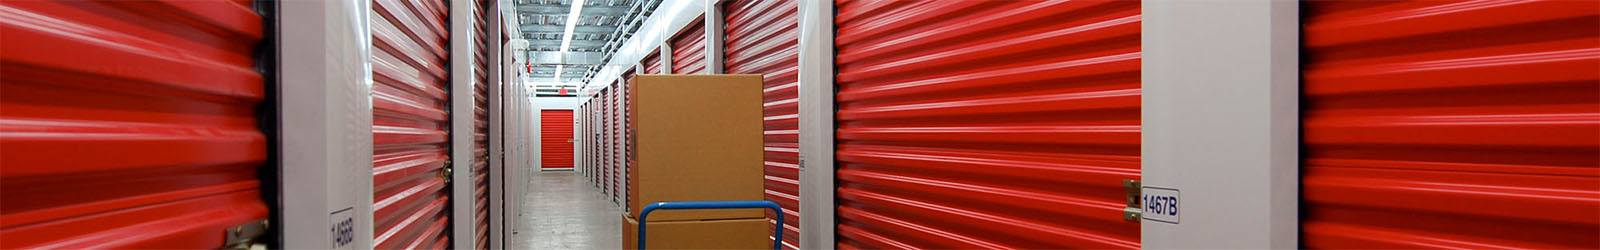 Reviews of self storage in Chilliwack, BC